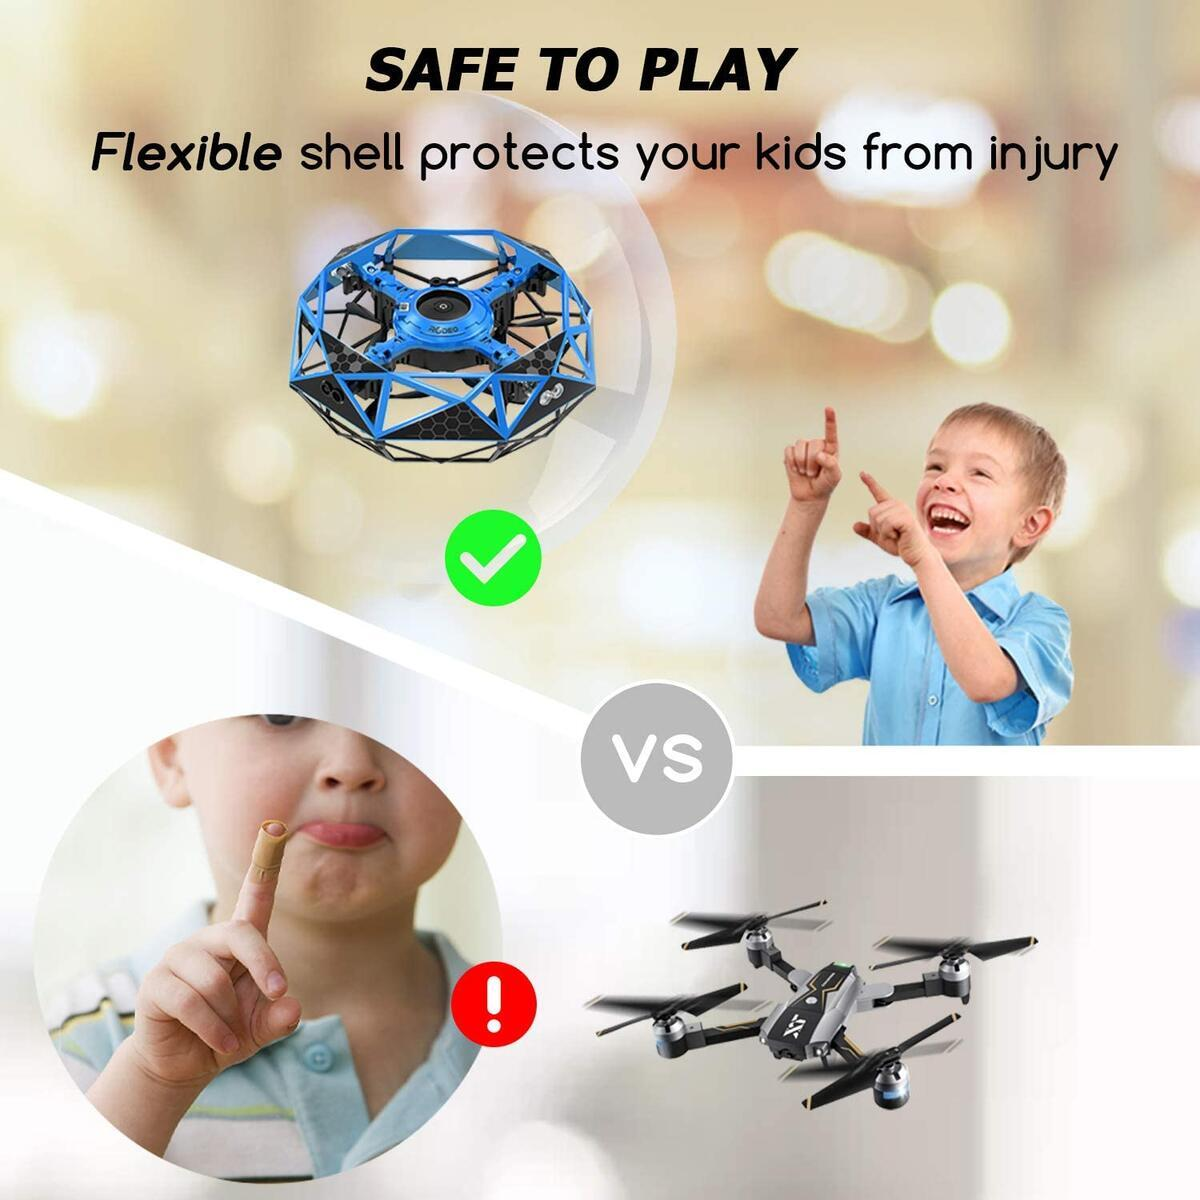 【40%  code+5% Coupon】Hand Operated Drone for Kids Toddlers Adults - Hands Free Mini Drones with 6 Sensors, Easy UFO Flying Ball Toys for Boys and Girls, Self Flying Drone 6 7 8 9 10 11 Years Old Kids